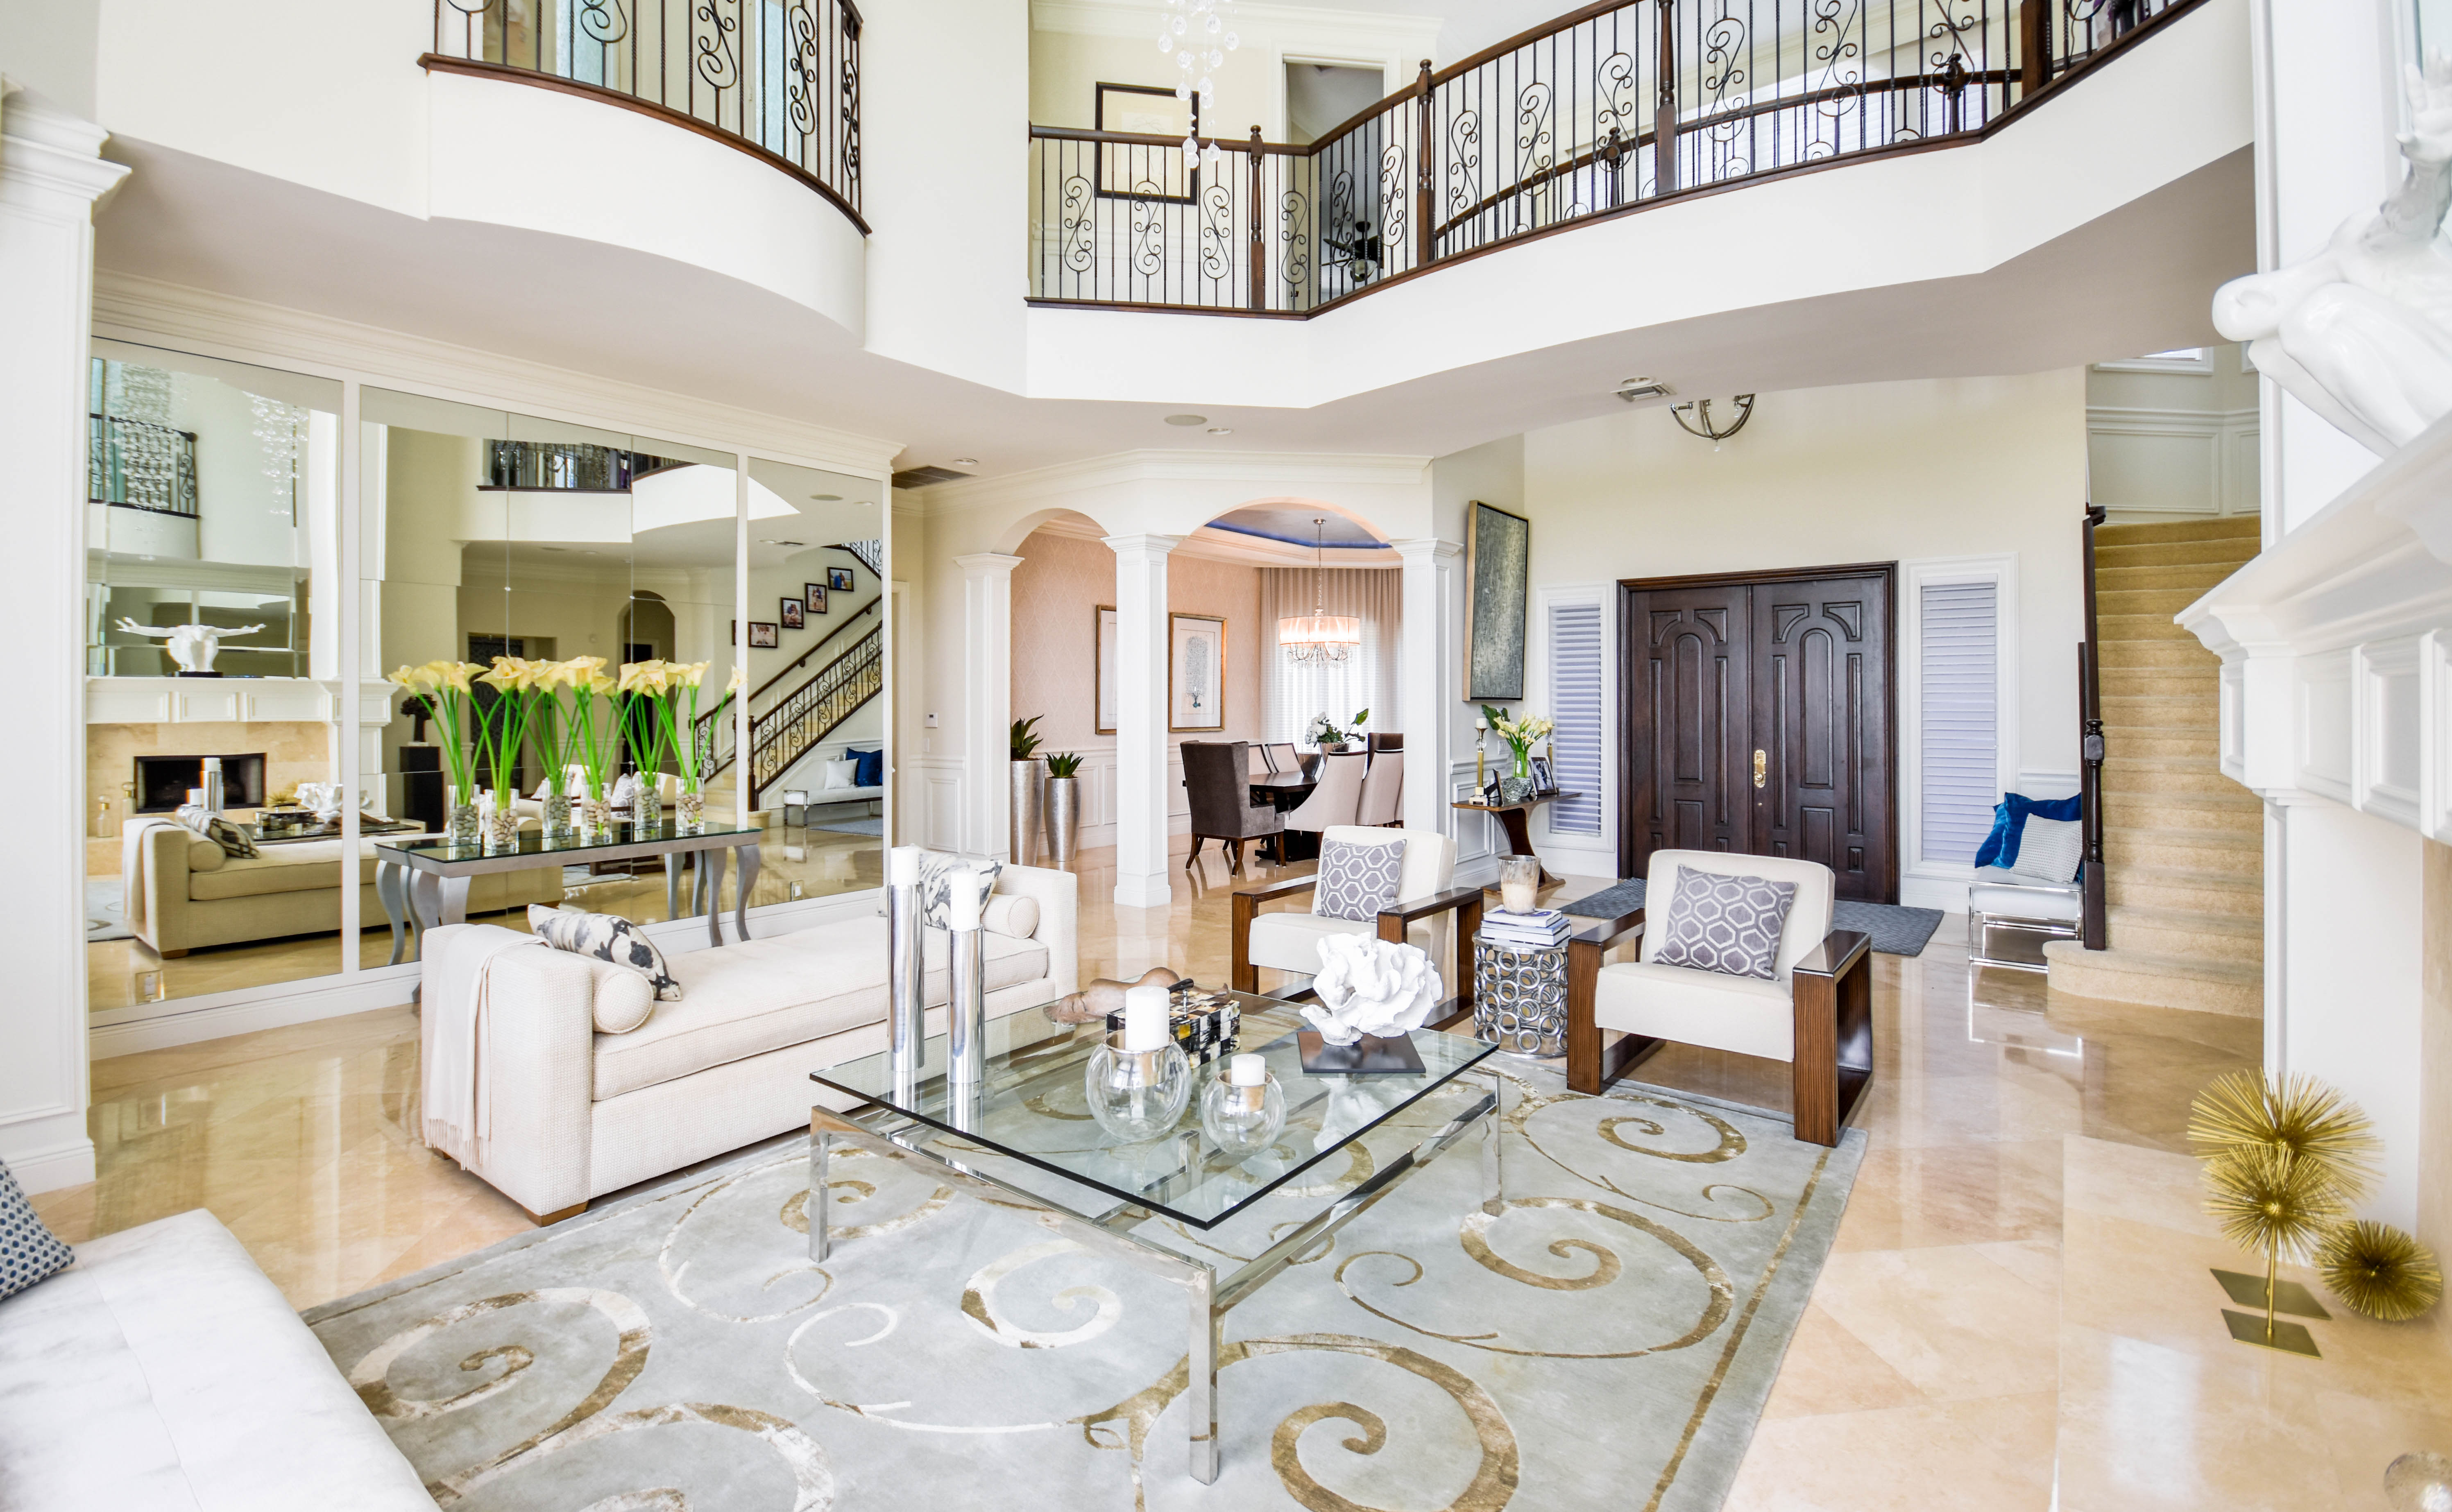 Exclusive Large Home In Boynton Beach Florida With Oversized Outdoor ...